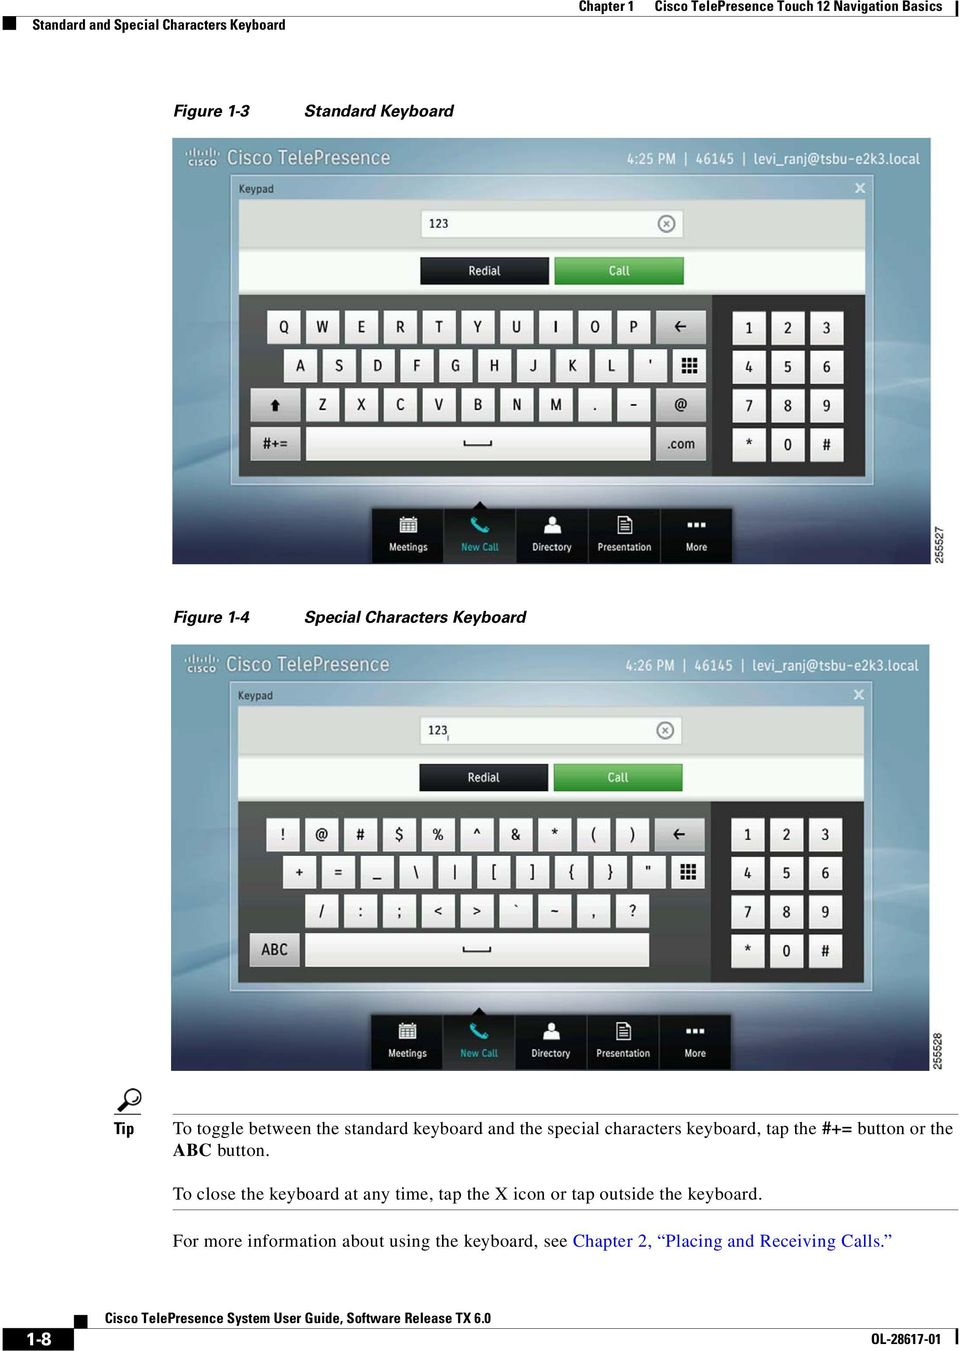 special characters keyboard, tap the #+= button or the ABC button.